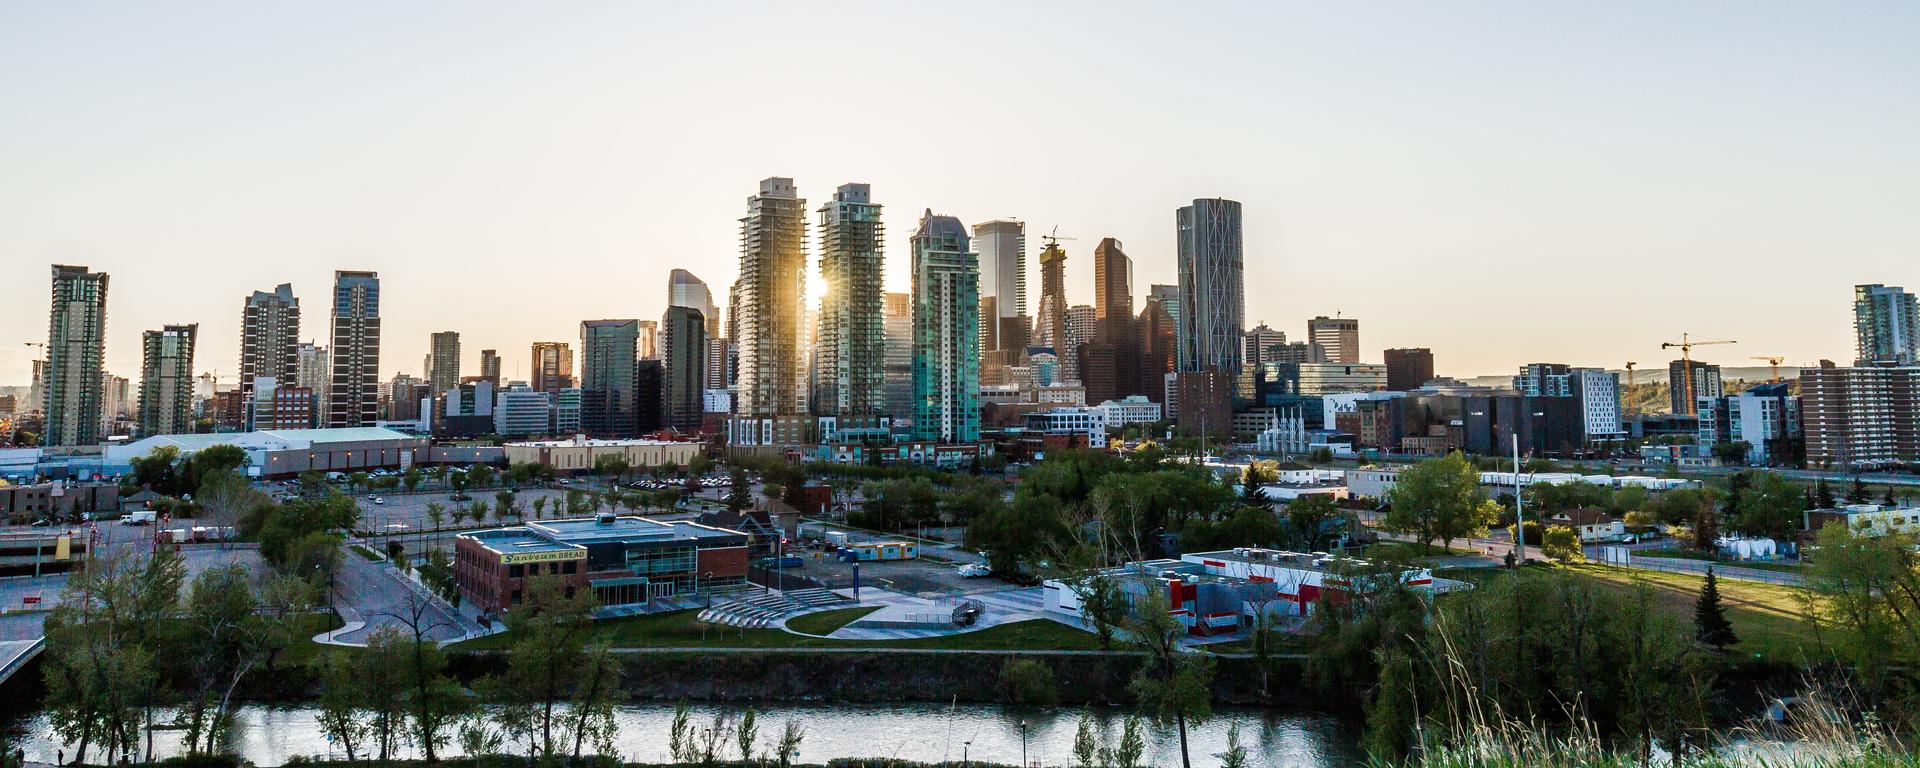 A view of downtown Calgary from the north side of the Bow River